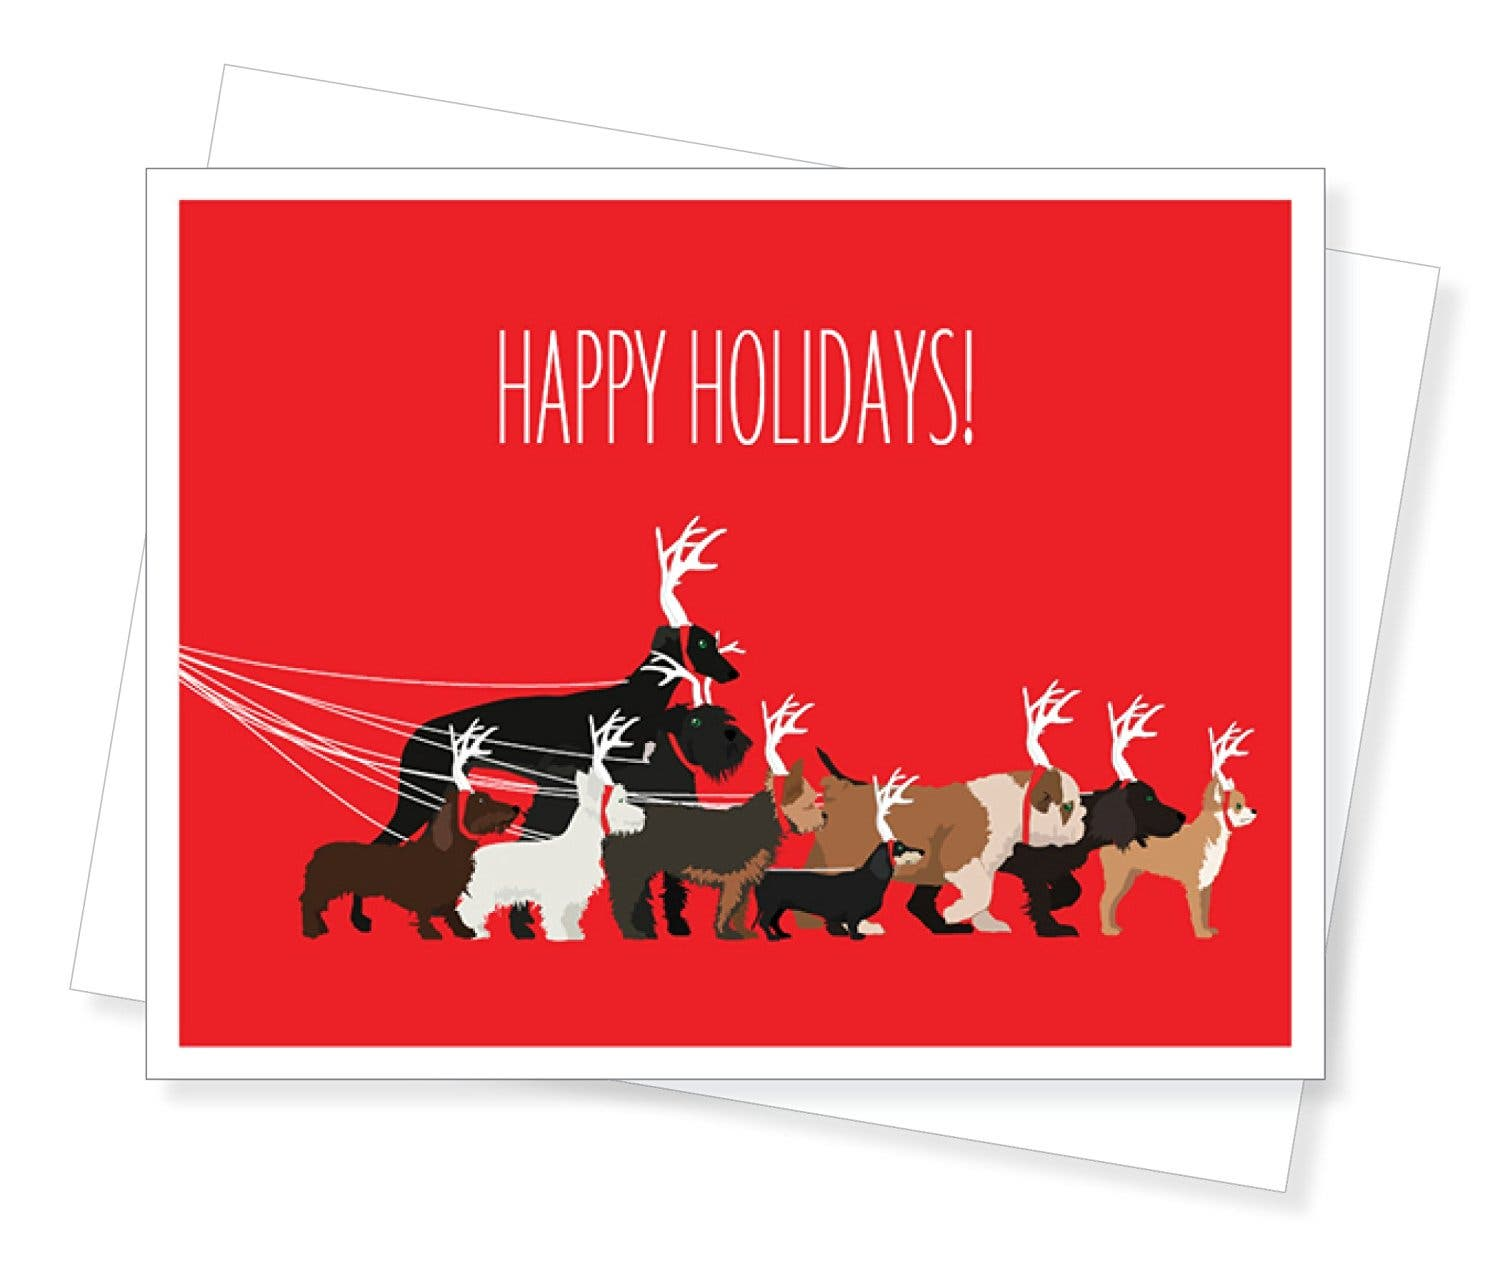 Holiday Cards in Every Style: 22 Ways to Spread Some Cheer ...